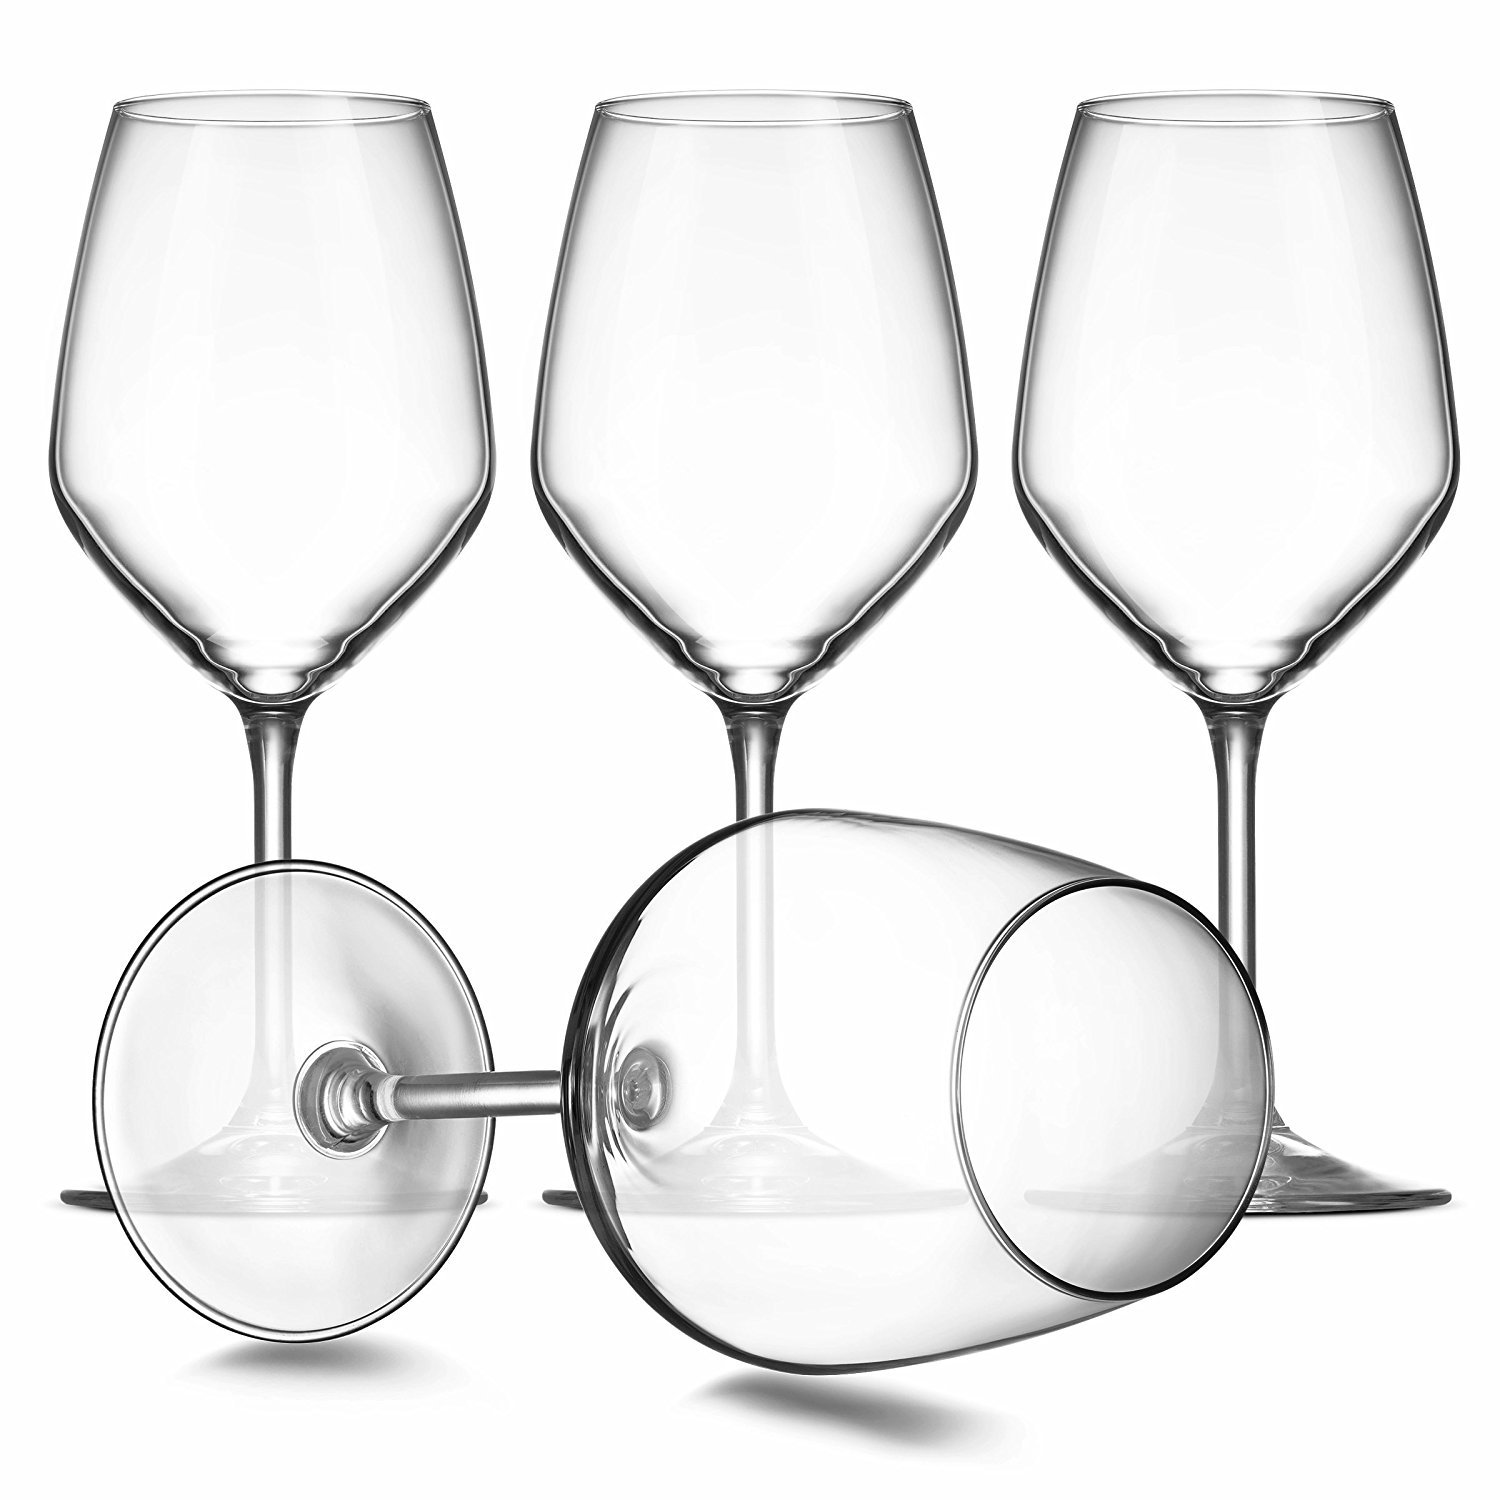 Paksh Novelty Italian White Wine Glasses - 15 Ounce - Lead Free - Shatter Resistant - Wine Glass, Clear (Set of 8) by Paksh Novelty (Image #2)